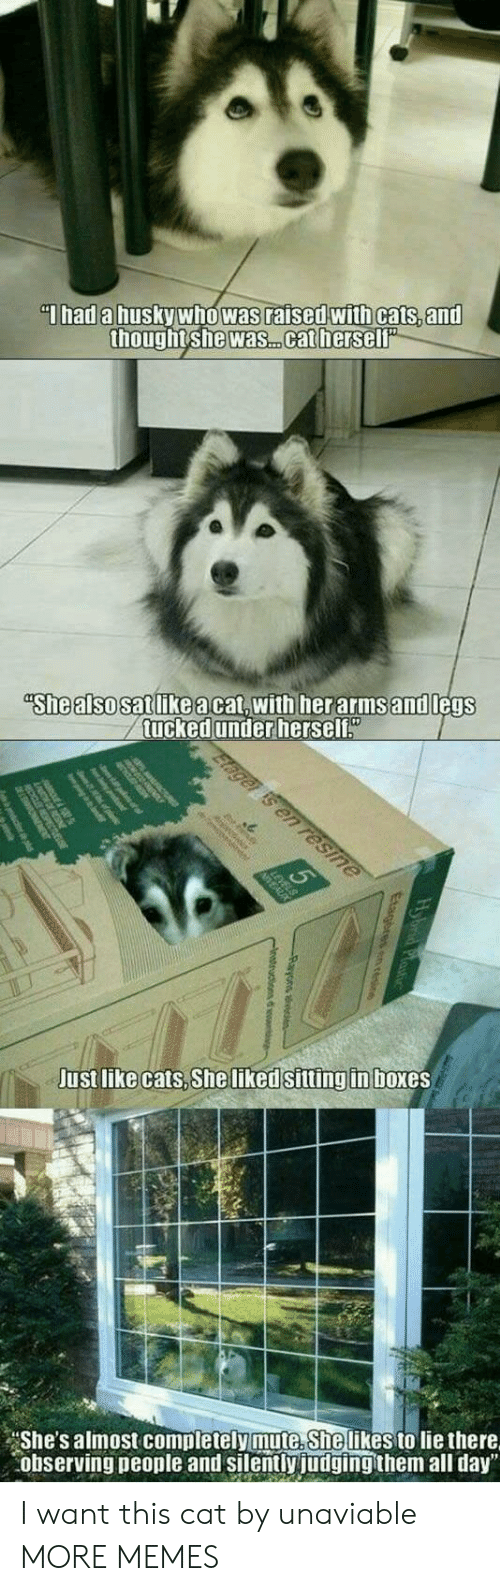 """Cats, Dank, and Memes: Thad a husky who was raised with cats, and  thought she was. .cat herself""""  """"She also satlikeacat,with herarmsand legs  tucked under herself""""  Elager is en resine  Just like cats, She liked sitting in boxes  She's almost completely mute. She likes to lie there  observing people and silently judging them all day"""" I want this cat by unaviable MORE MEMES"""